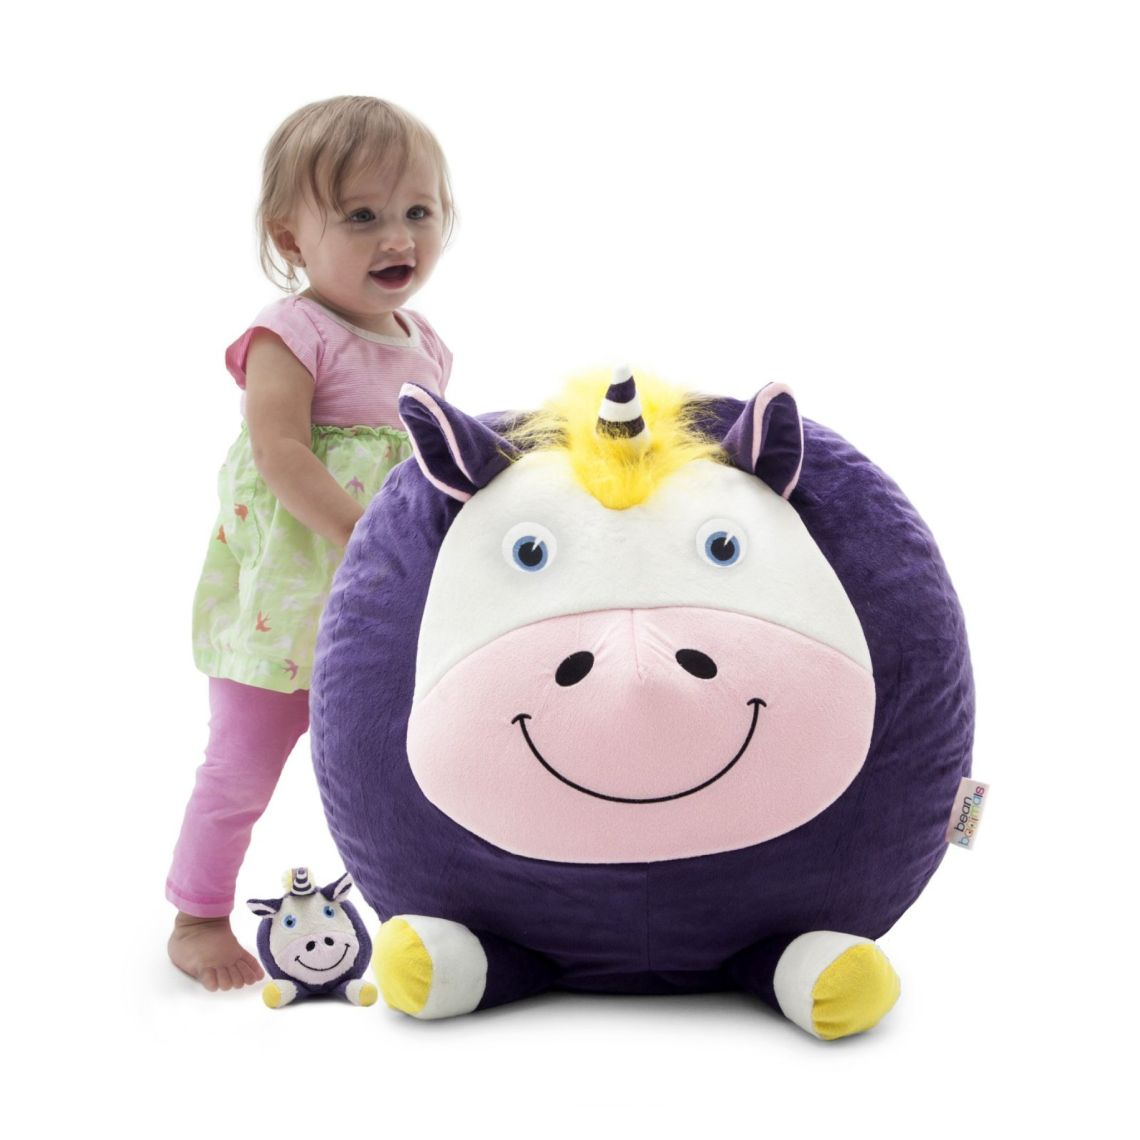 Big Joe Bagimal w/ Lil Buddy Bean Bag Chair, Multiple Characters - Walmart.com